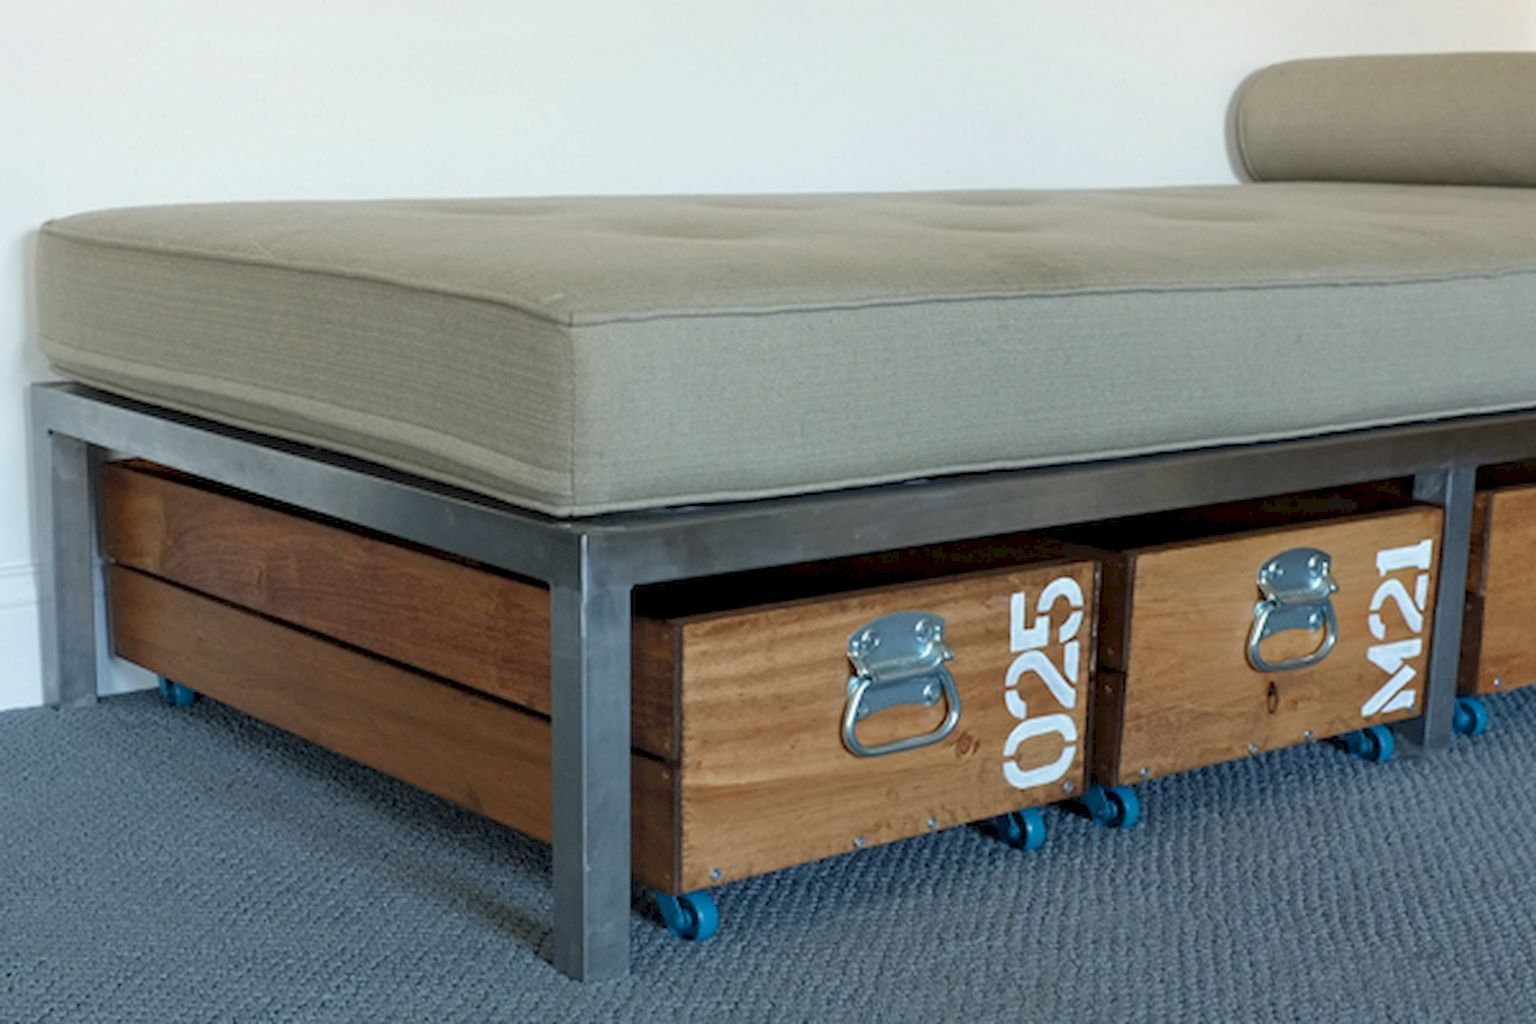 Cool creative under bed storage ideas for bedrooms